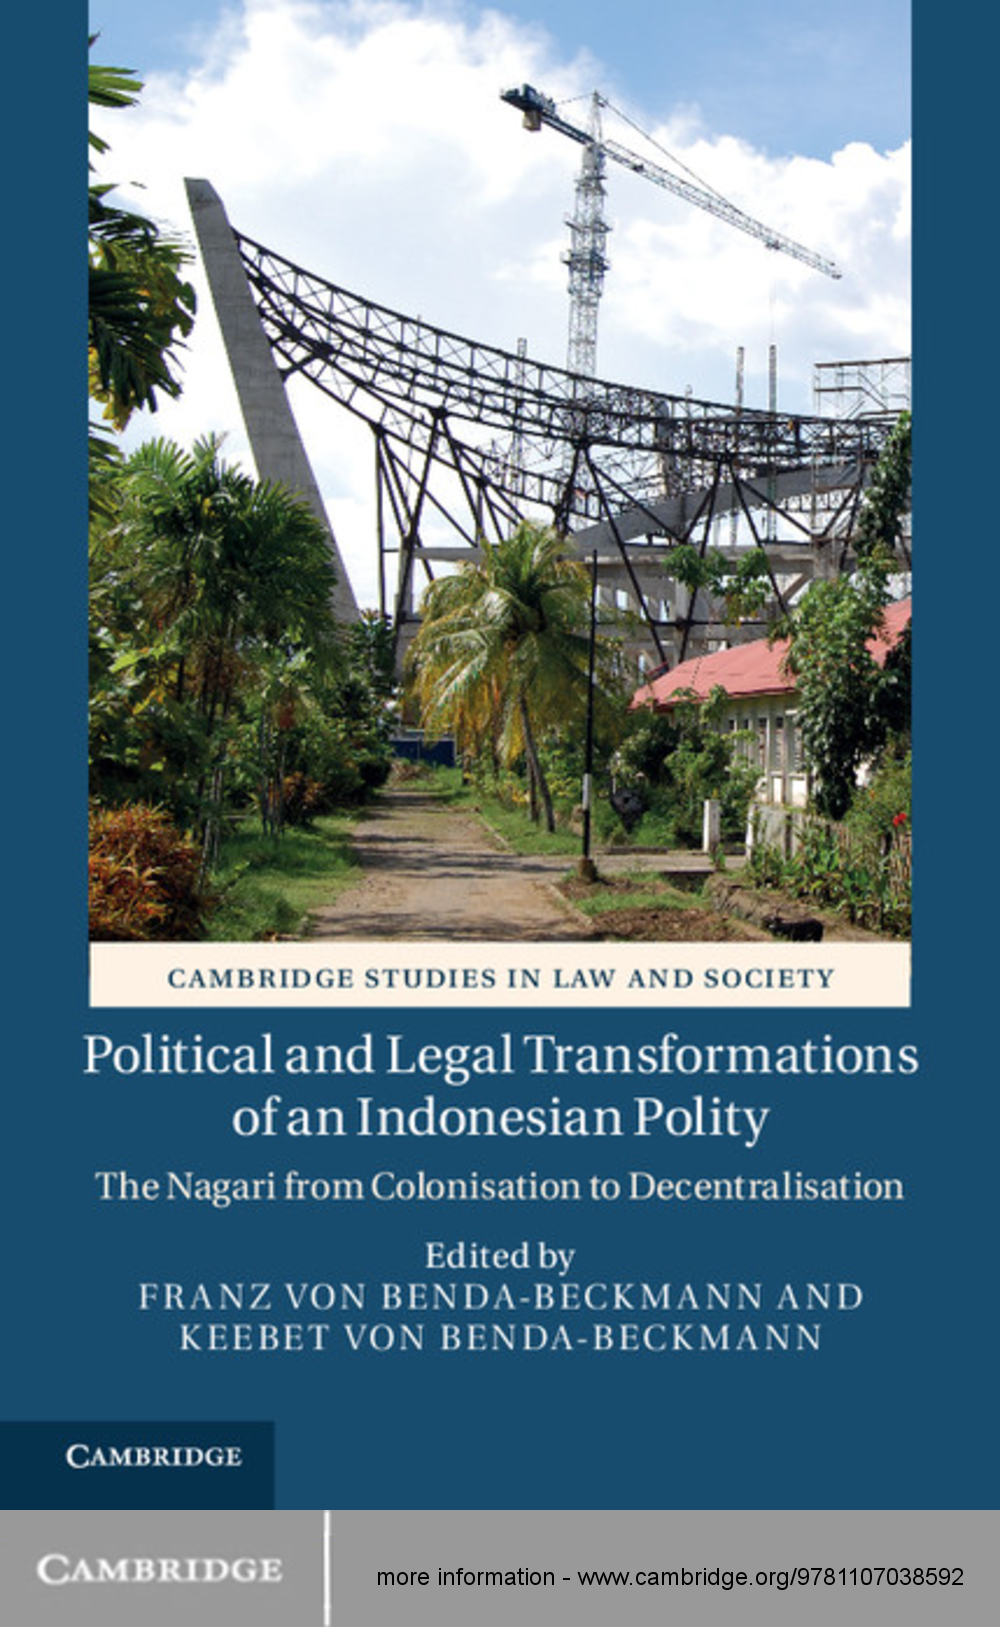 Political and Legal Transformations of an Indonesian Polity The Nagari from Colonisation to Decentralisation